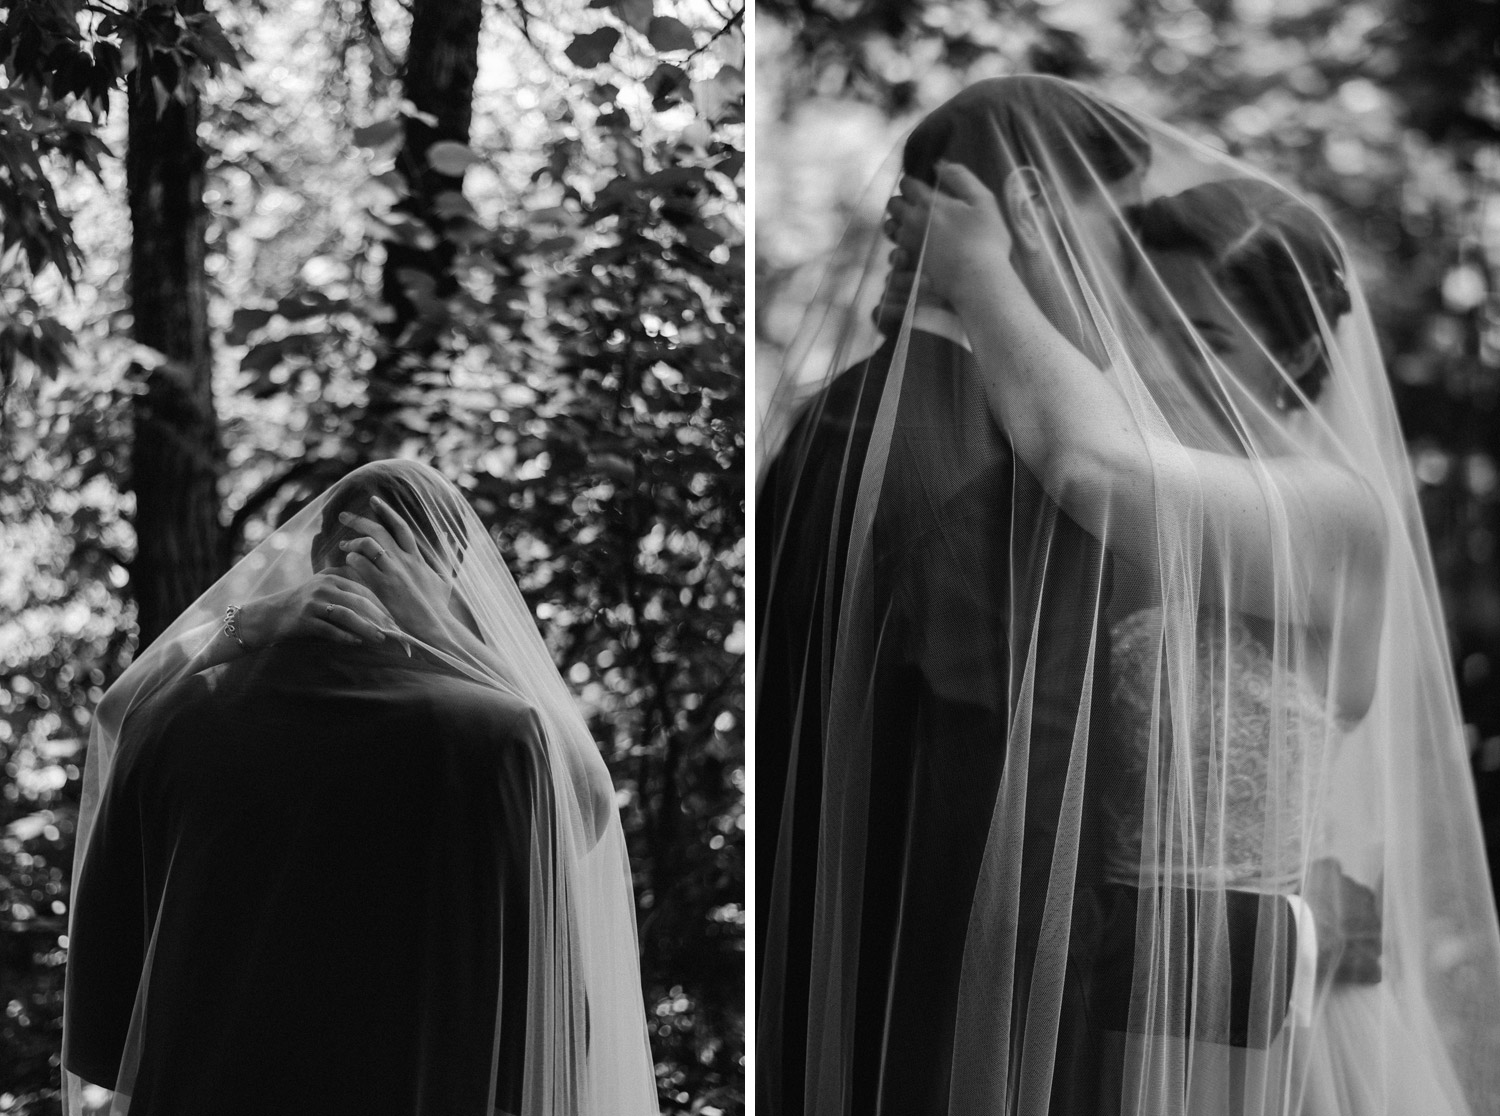 moody bride and groom portraits by geneoh photography